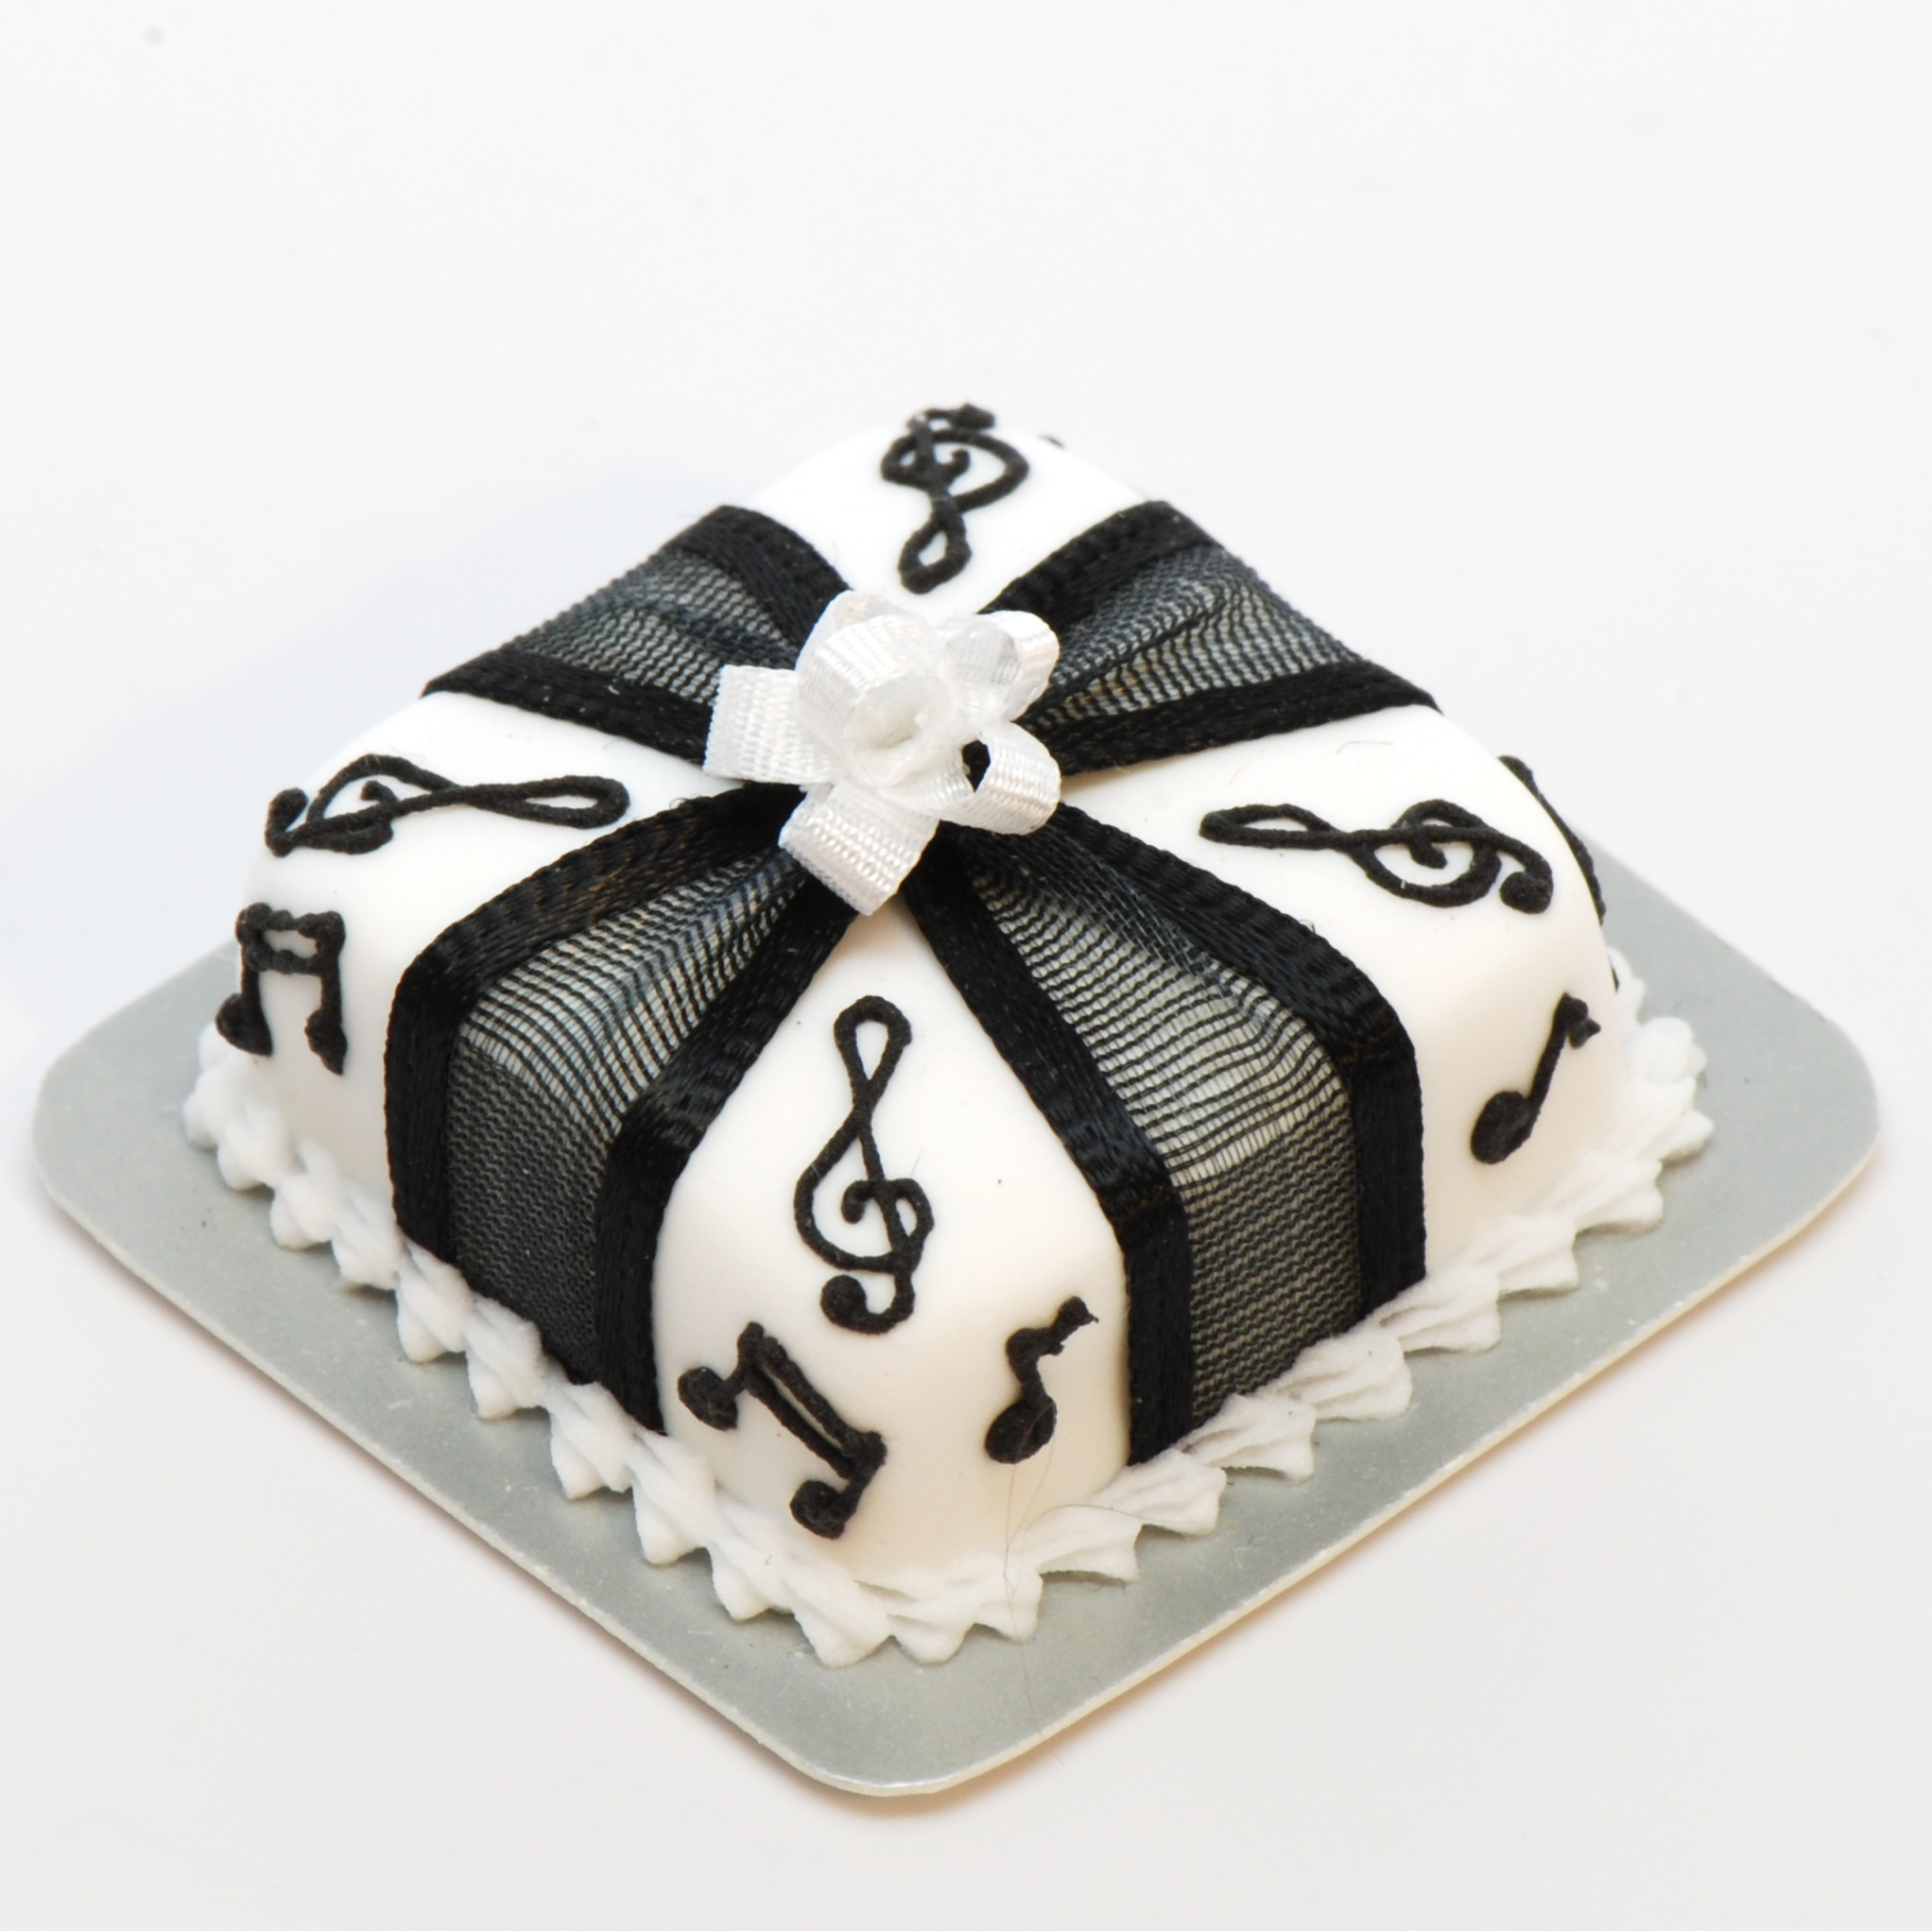 Cake Design Musical Notes : Birthday cake on Pinterest Music Cakes, Musicals and ...